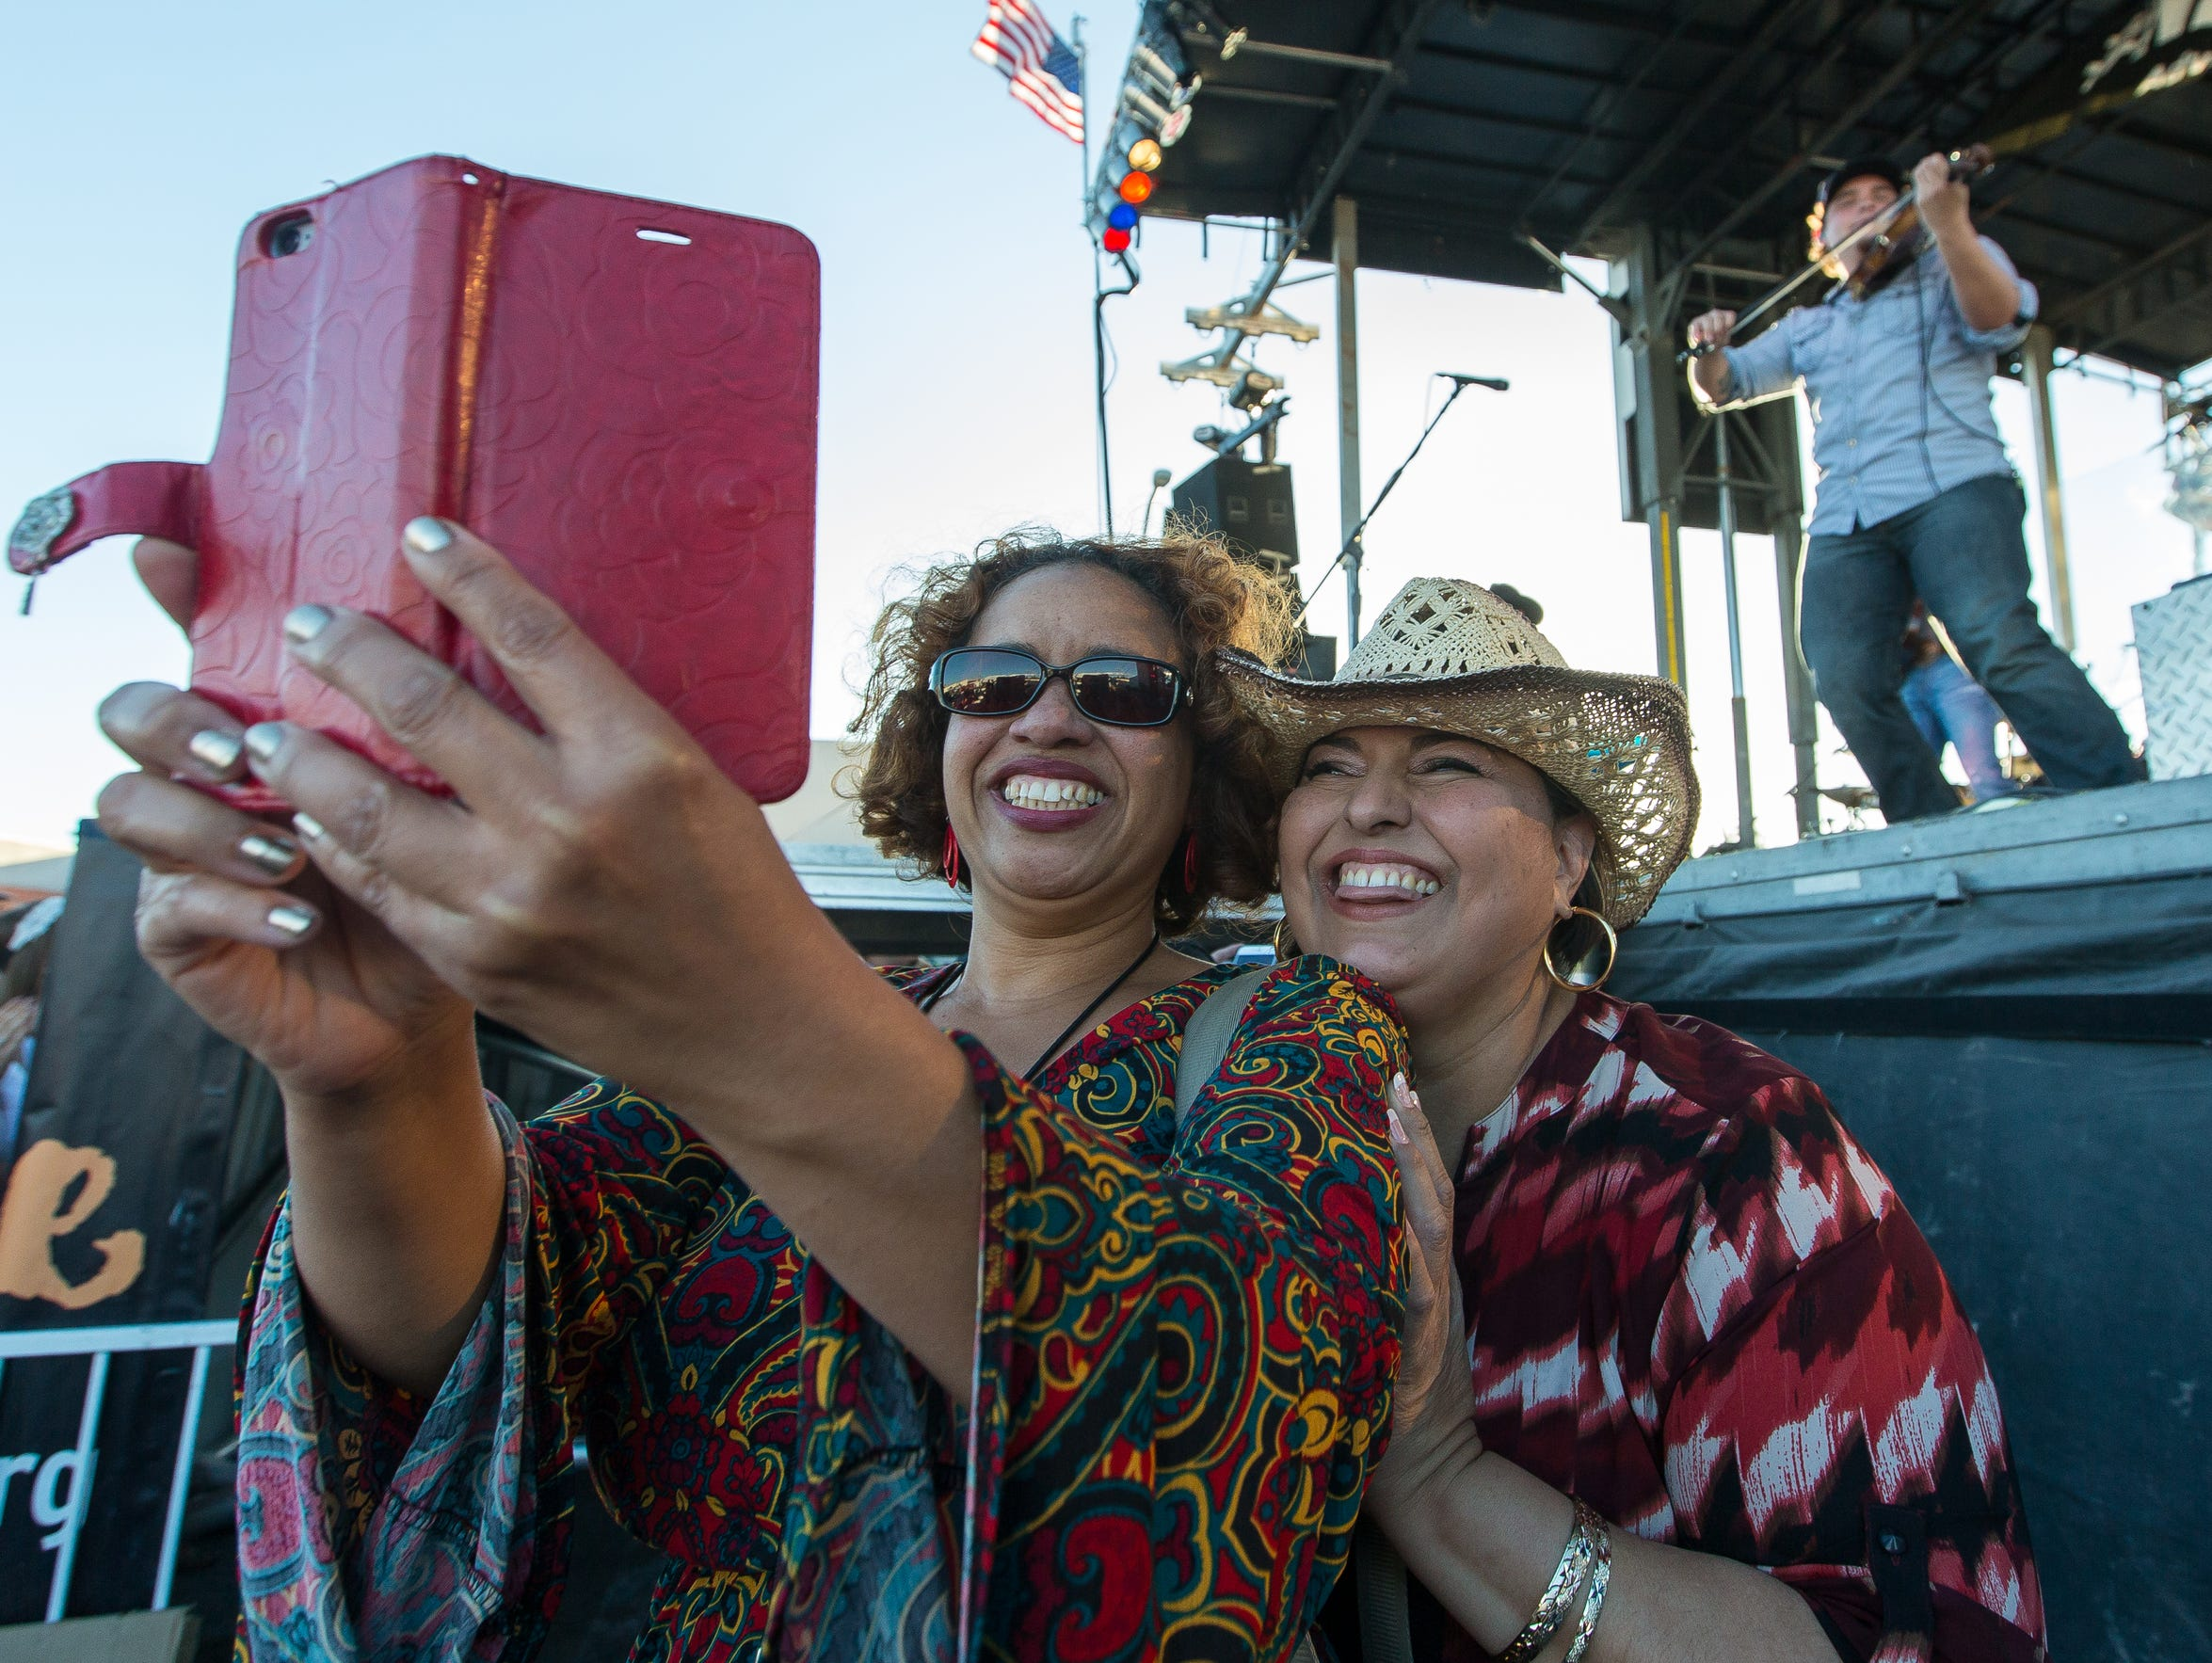 Fans at last year's country fest take a selfie during